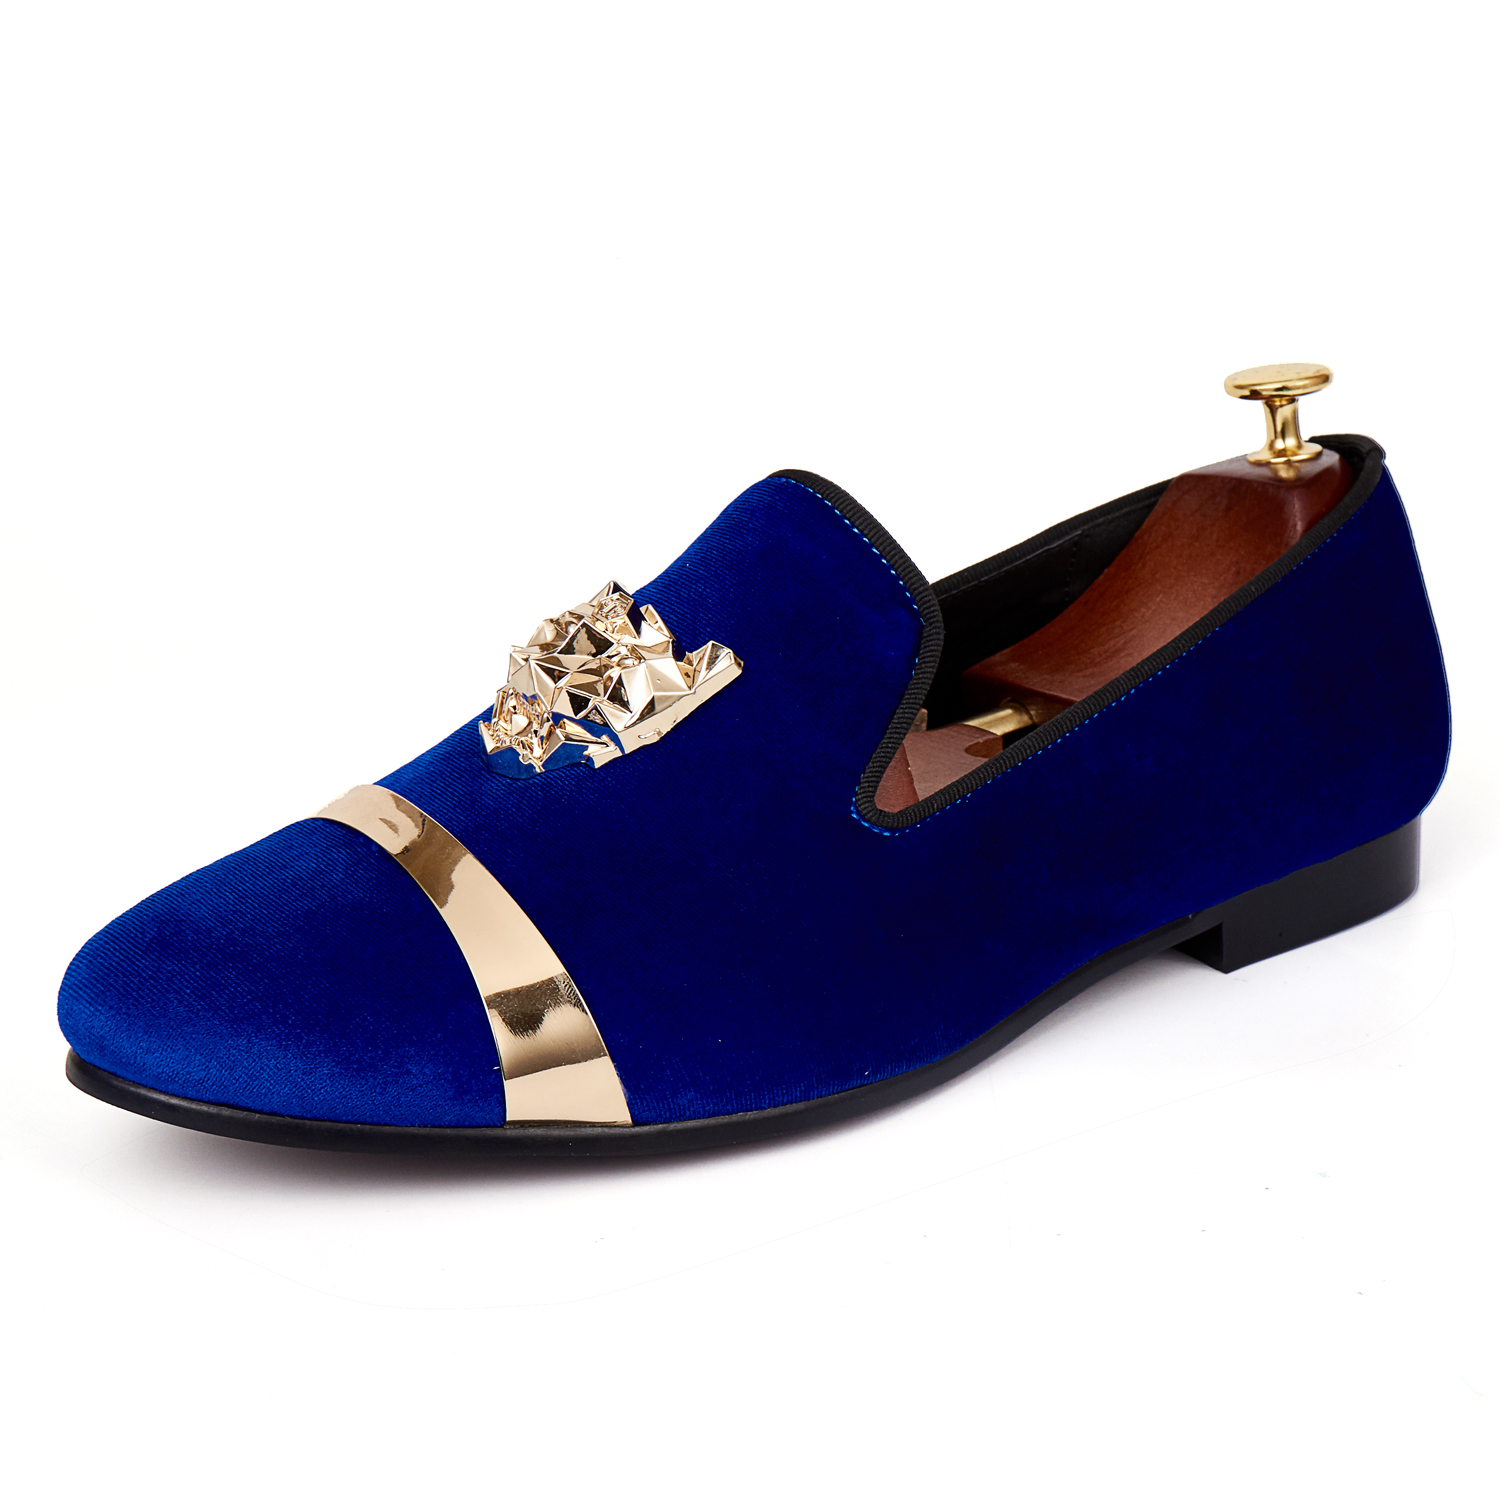 Harpelunde Män Platser Ny Arrival Klänning Skor Blue Velvet Loafers With Animal Buckle Size 7-14